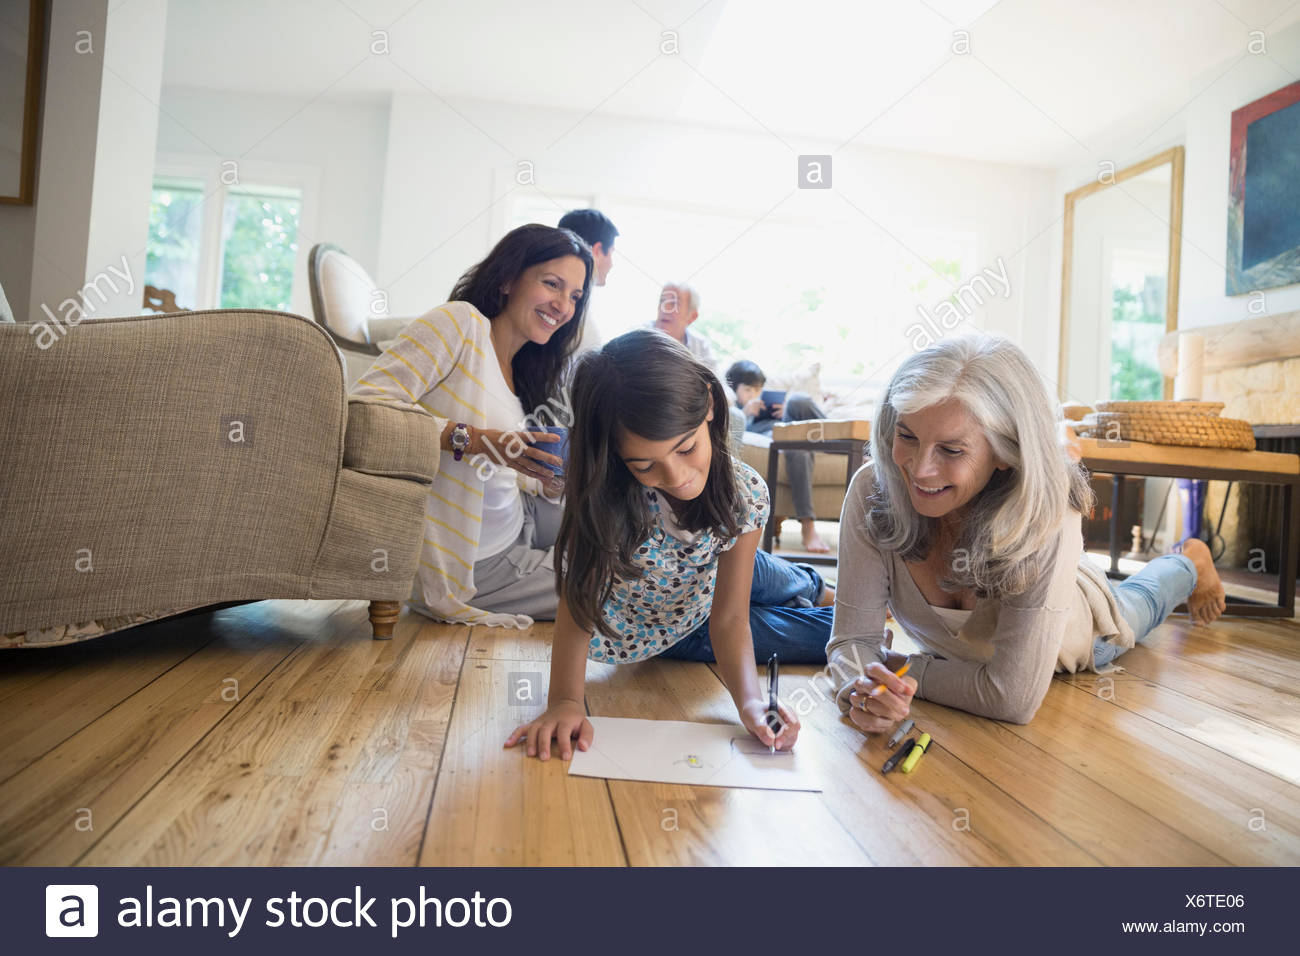 Grandmother and granddaughter coloring in living room - Stock Image